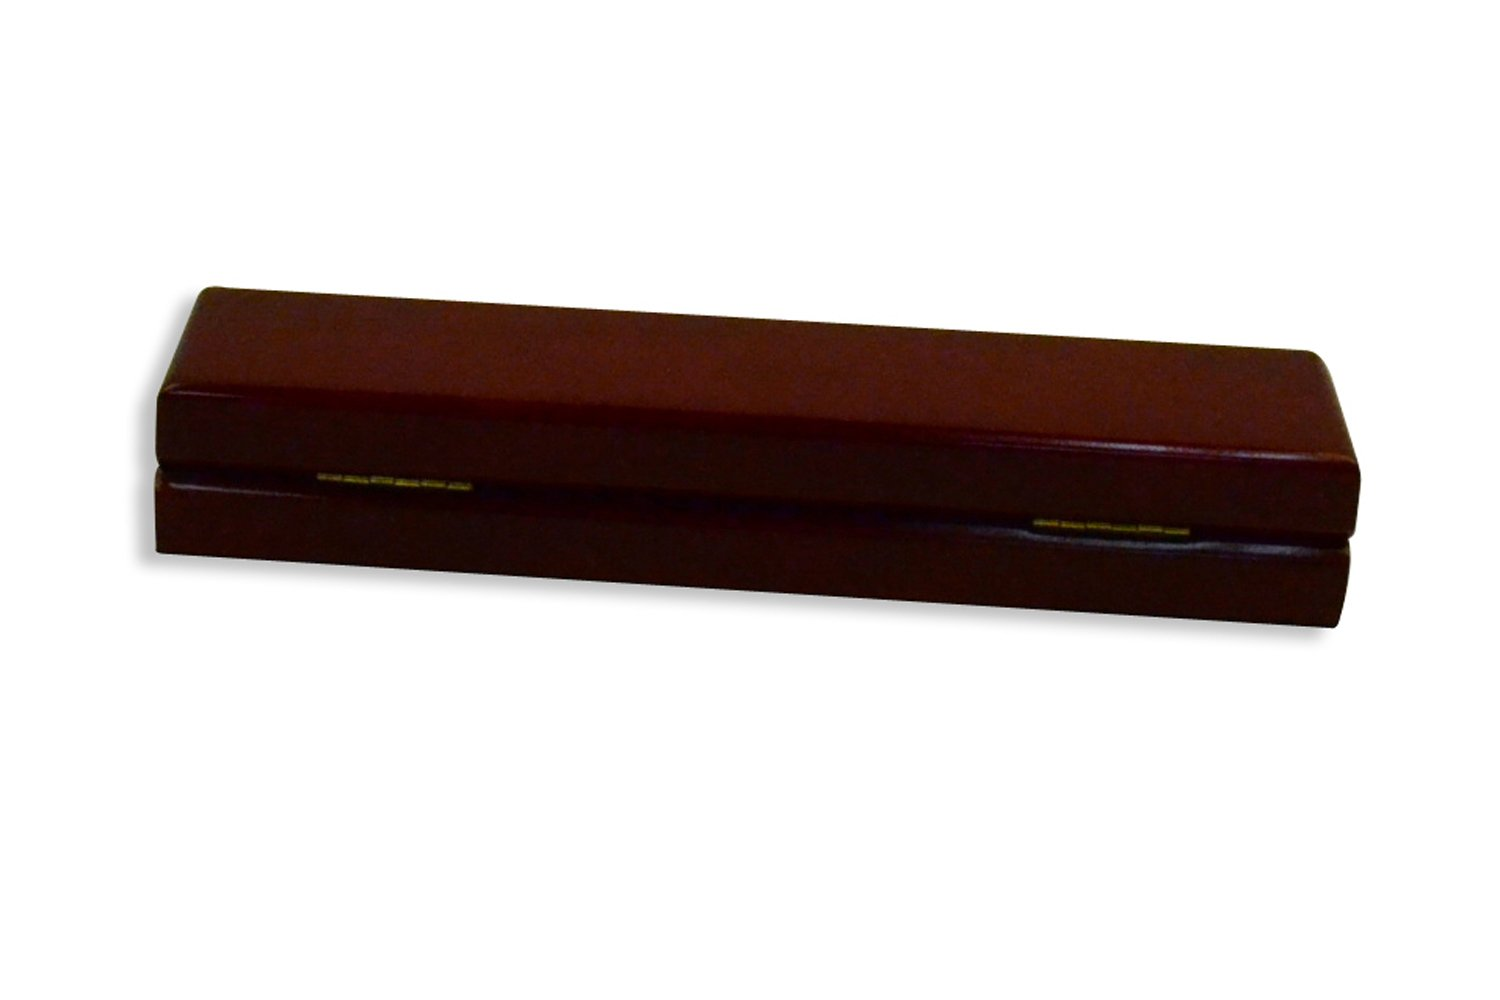 Regal pak ® one-piece jefferson collection premium rosewood bracelet box 8 7/8'' x 2 1/4'' x 1 3/8''